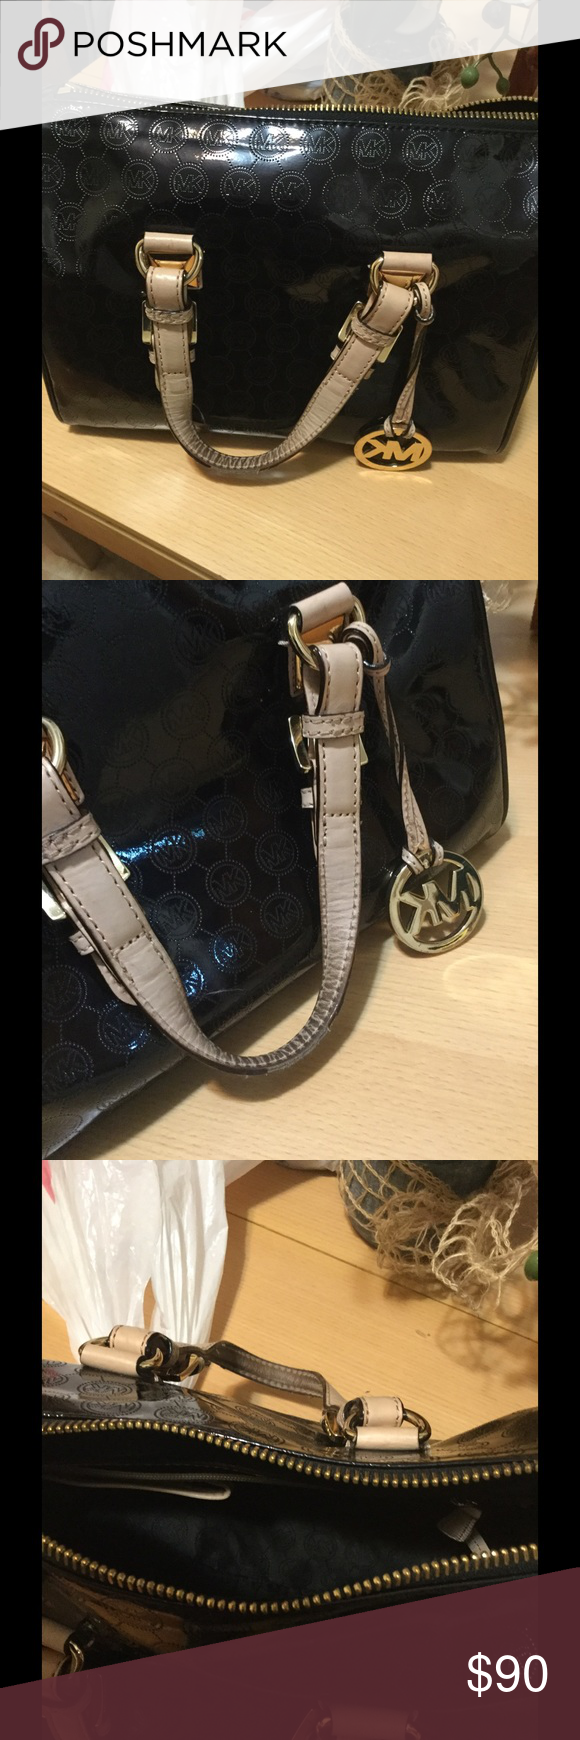 Michael  kors Grayson bag Michael Kors Grayson black bag with biege bucked sraps , it wear on the straps, inside and outside is clean no smell, in good condition.         Measurements: 12 x 10  x 51/2 Michael Kors Bags Satchels